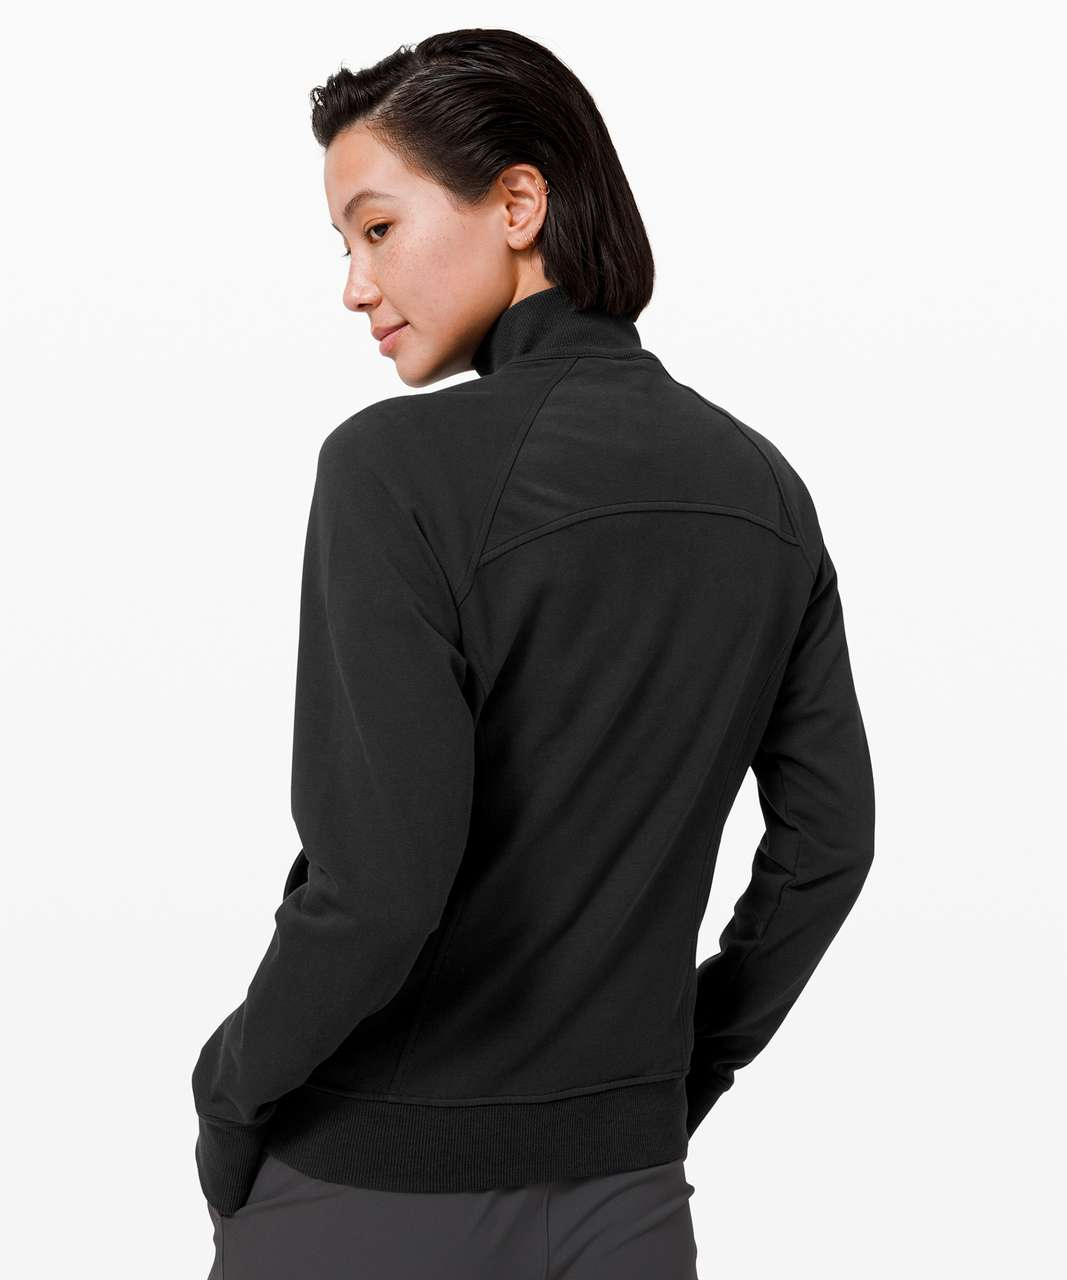 Lululemon Scuba 1/2 Zip - Black